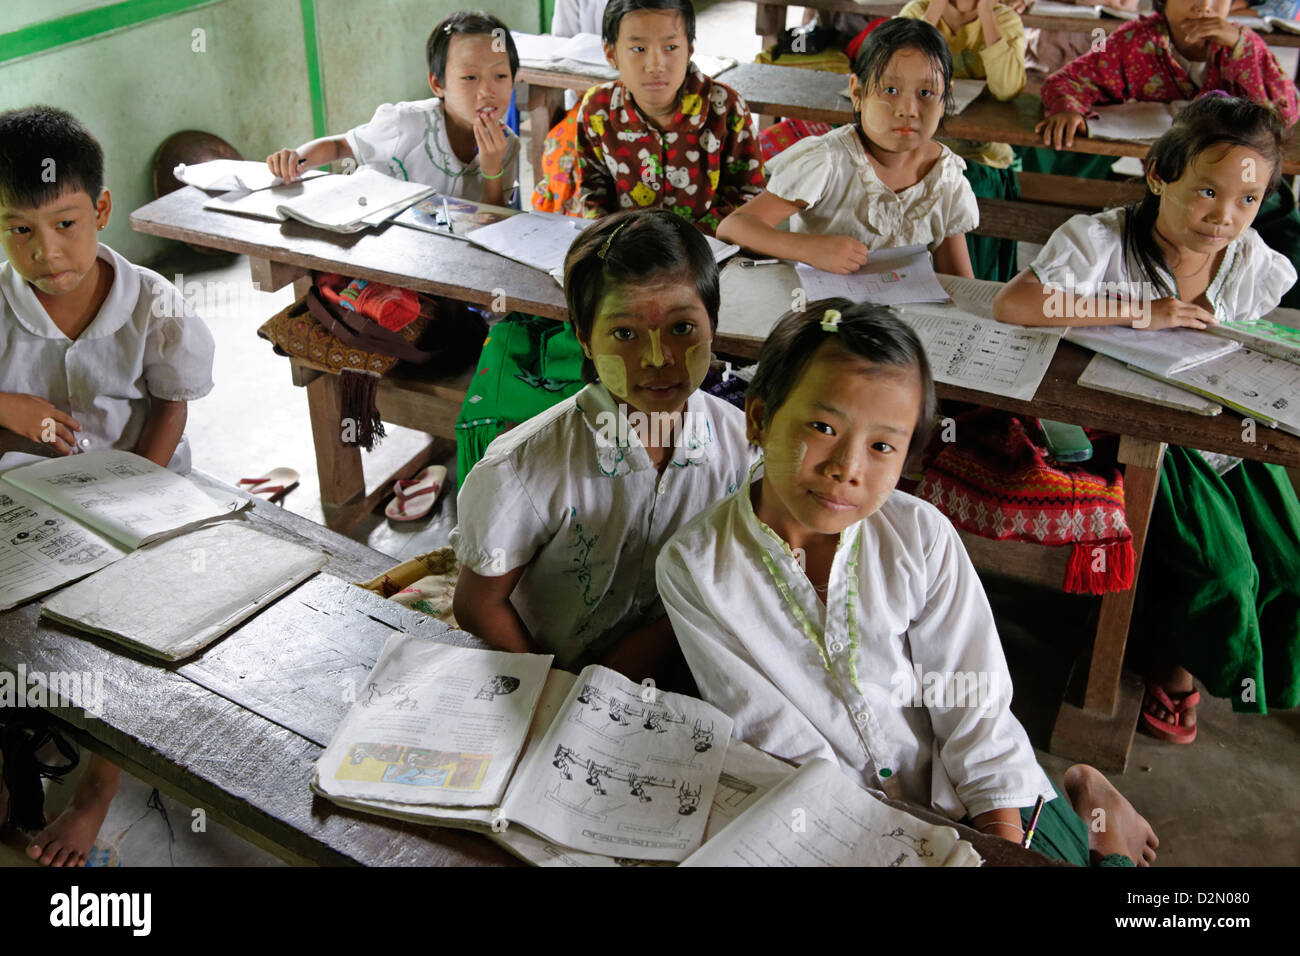 Primary school, Thet Kel Kyin village, Indaw area. Sagaing Division, Republic of the Union of Myanmar (Burma), Asia - Stock Image